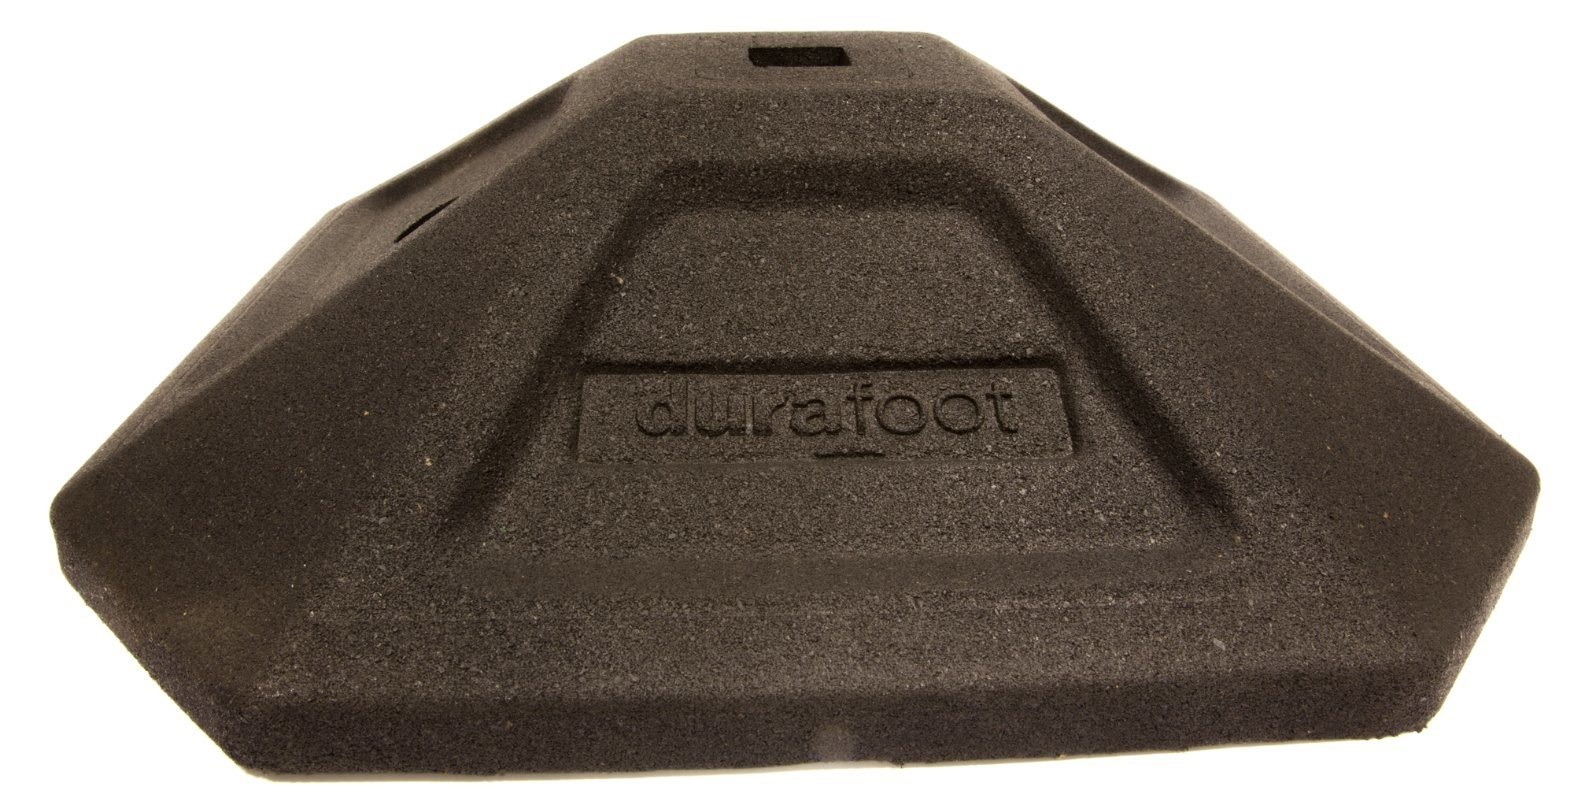 Durafoot 500 Square Support Foot (41X41)